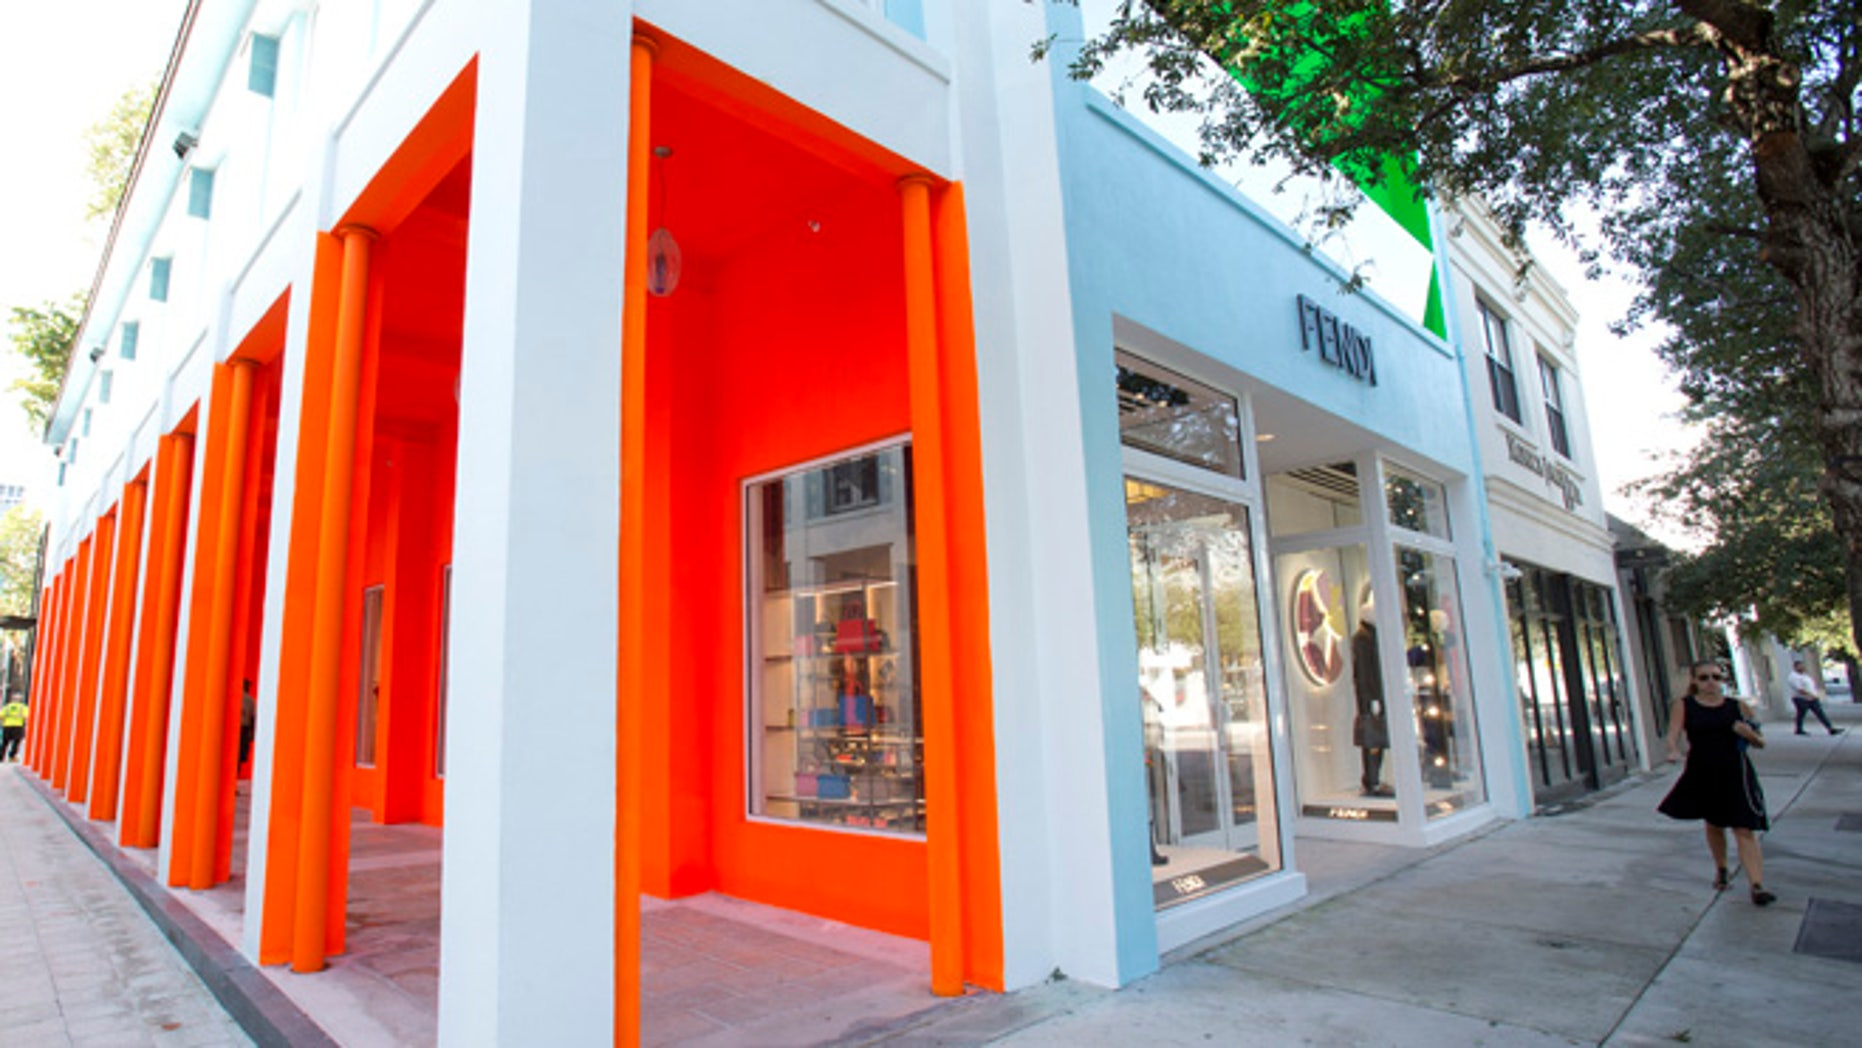 FILE - In this Oct. 30, 2015, file photo, a pedestrian walks past a Fendi store in the Miami Design District in Miami. A proliferation of luxury stores in Miami is serving wealthy Latin Americans fleeing financial and political turmoil in their countries. (AP Photo/Wilfredo Lee, File)